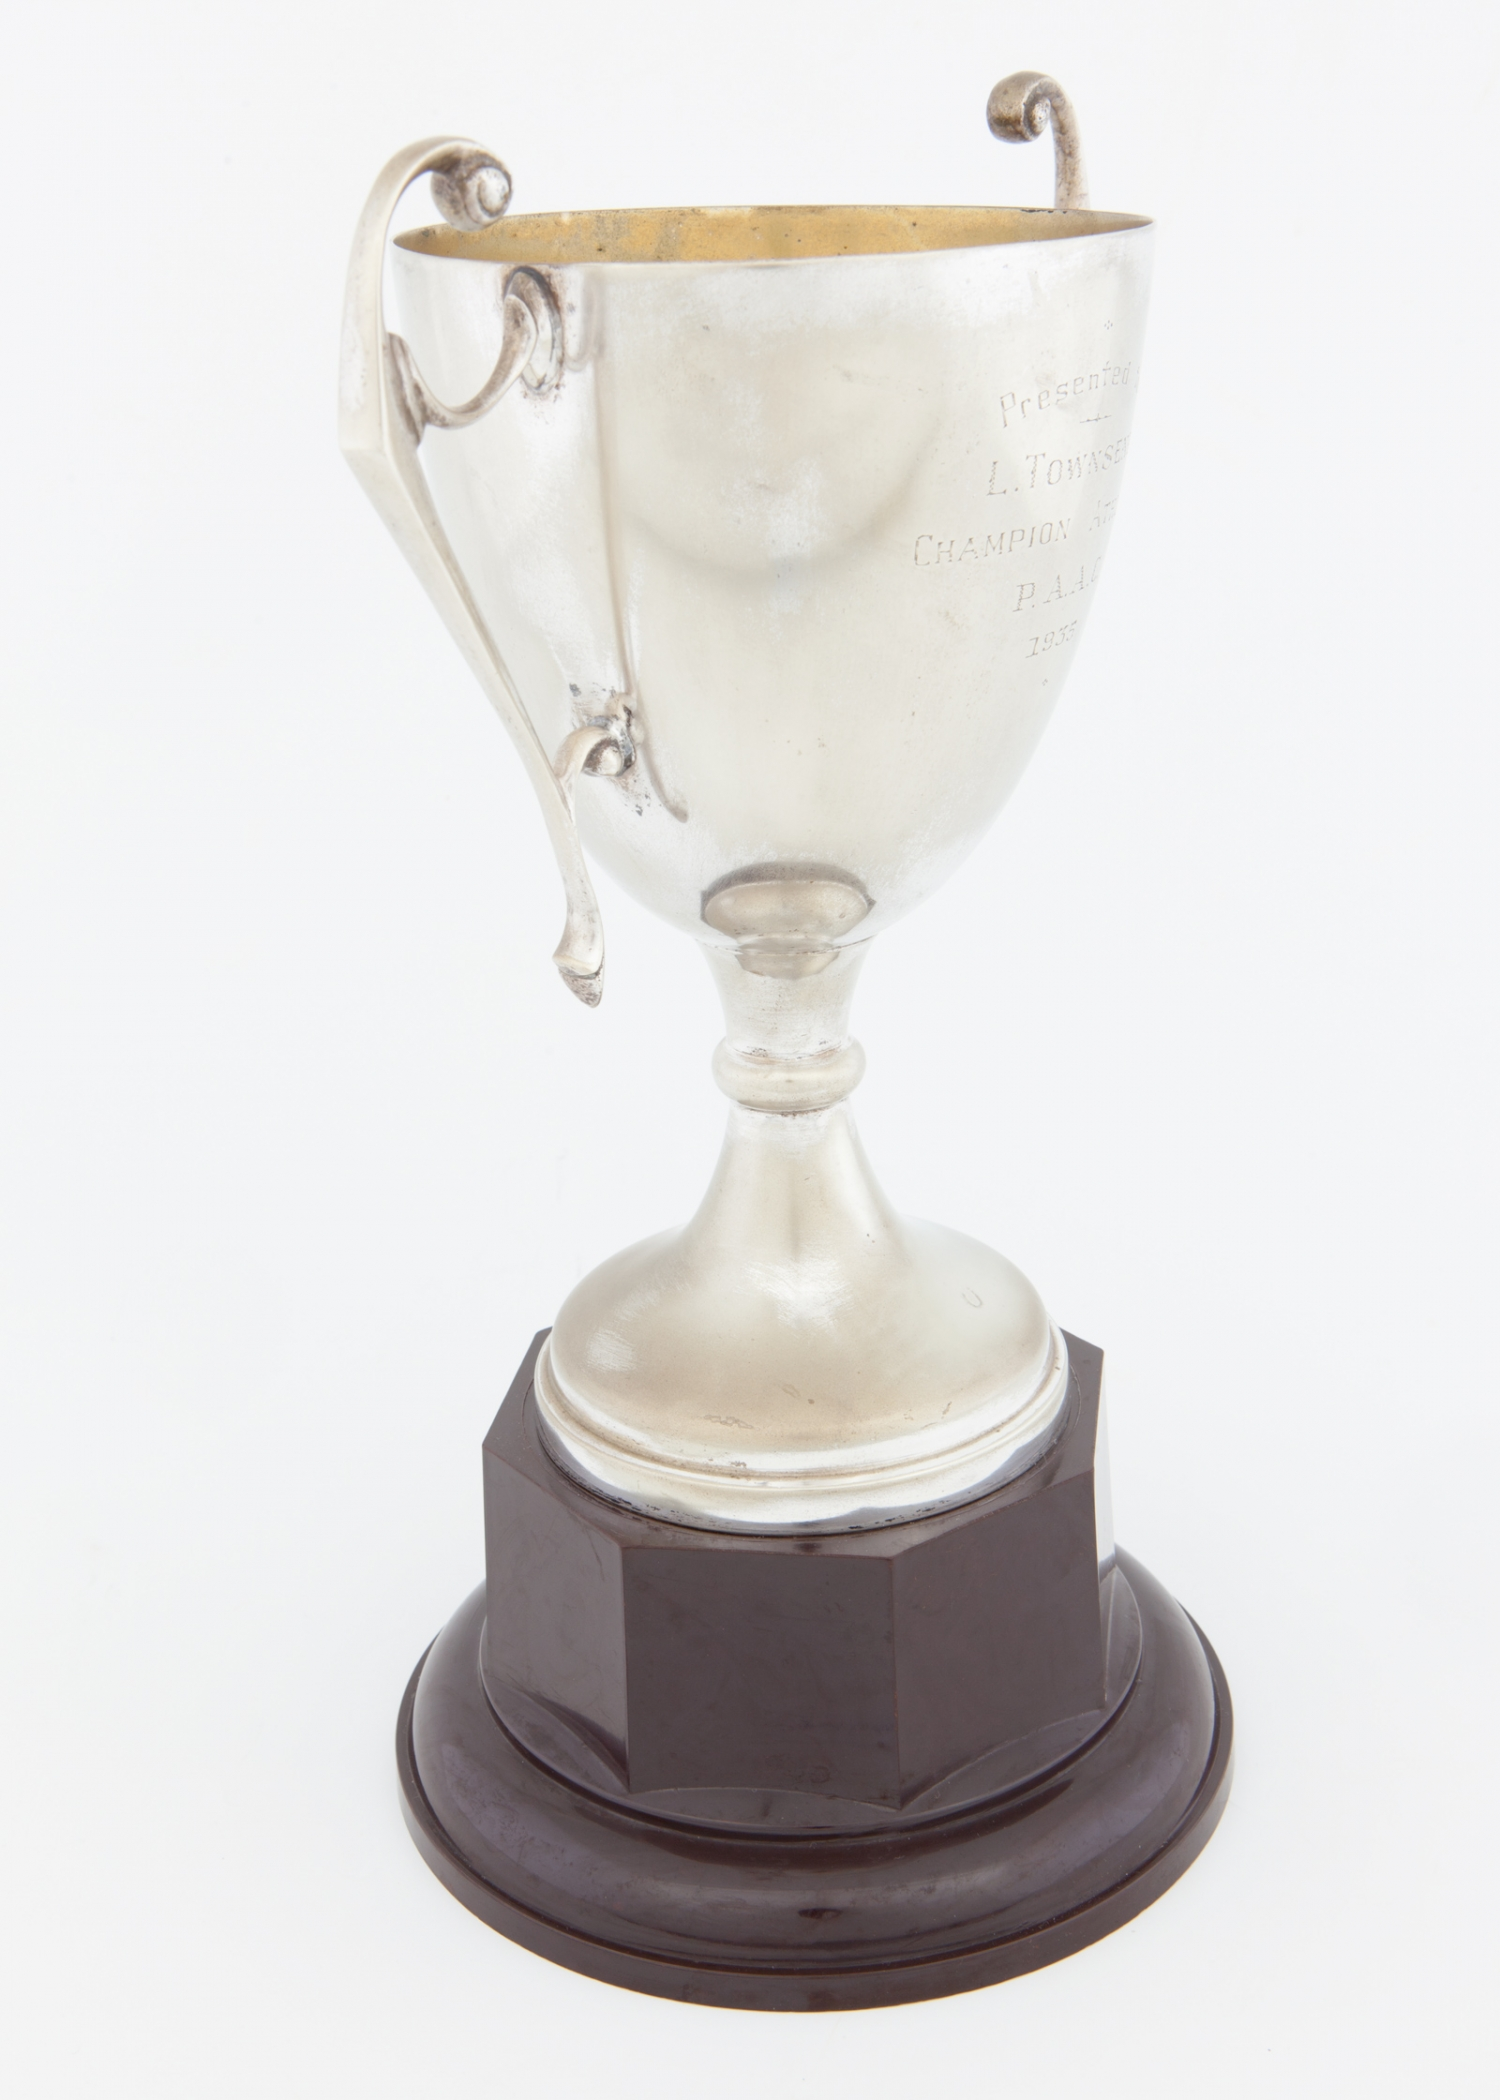 Trophy presented to L. Townsend, Champion Athlete, P.A.A.C., 1935